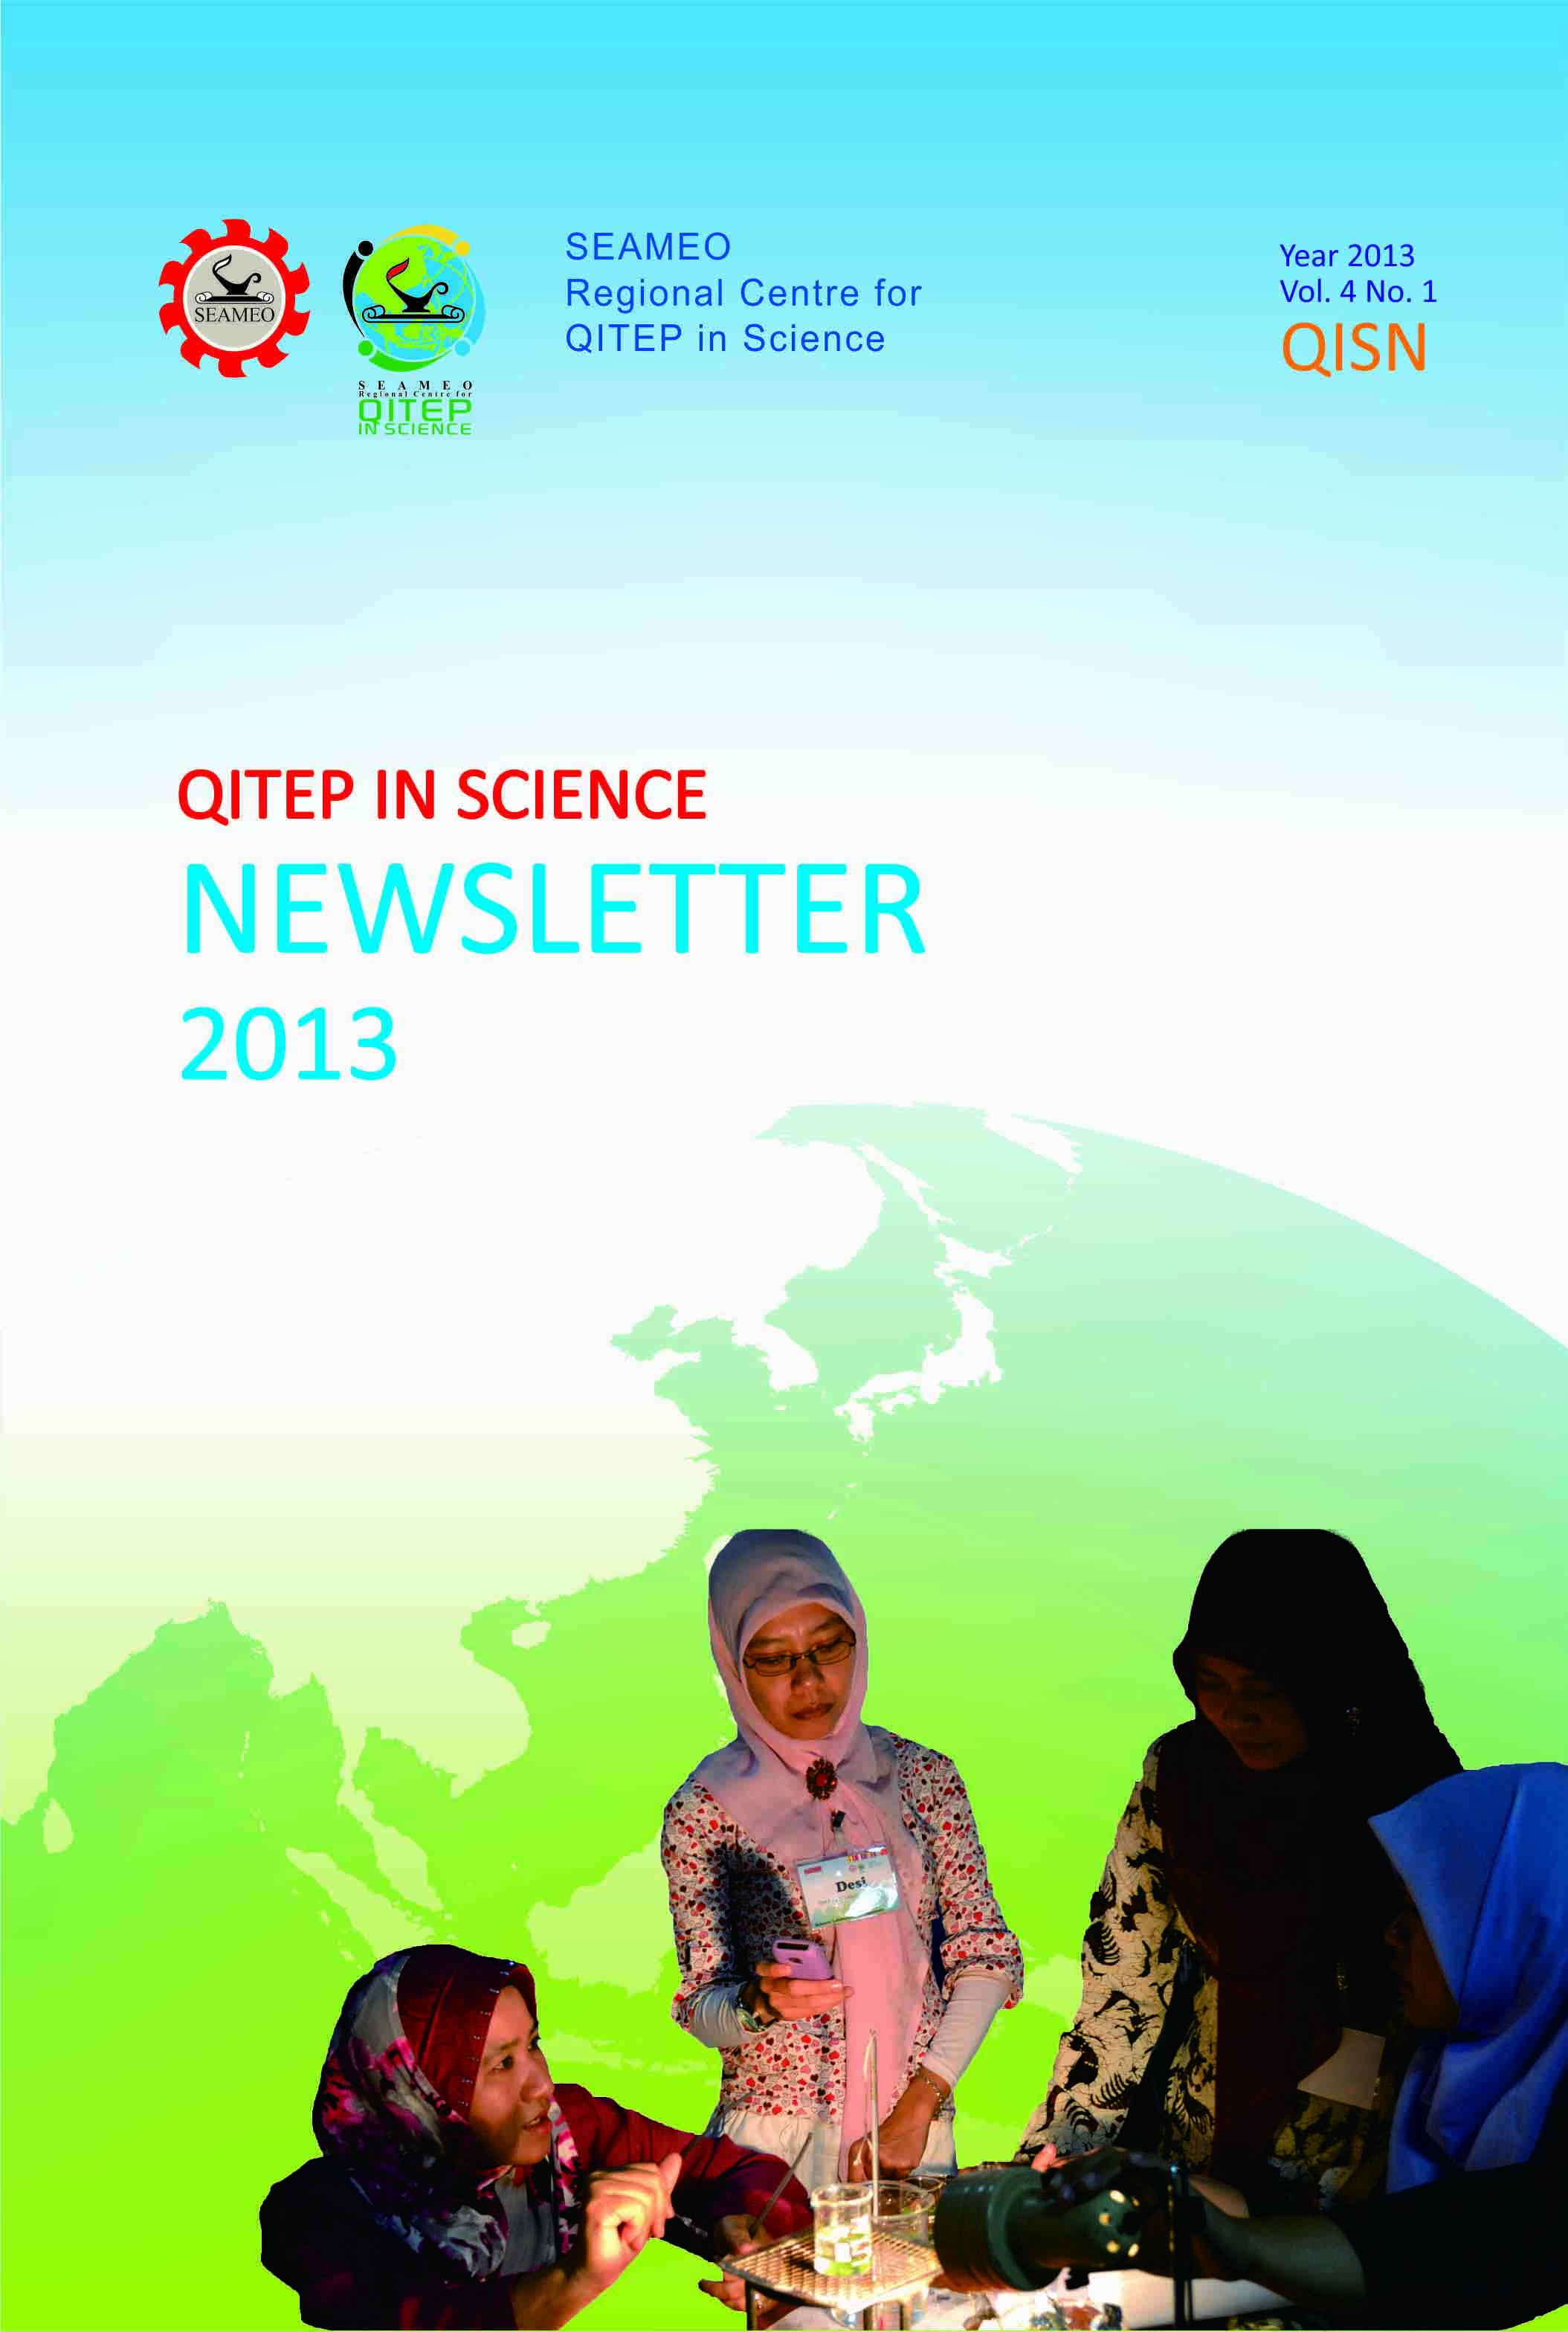 SEAQIS Newsletter Vol 4 No 1 2013